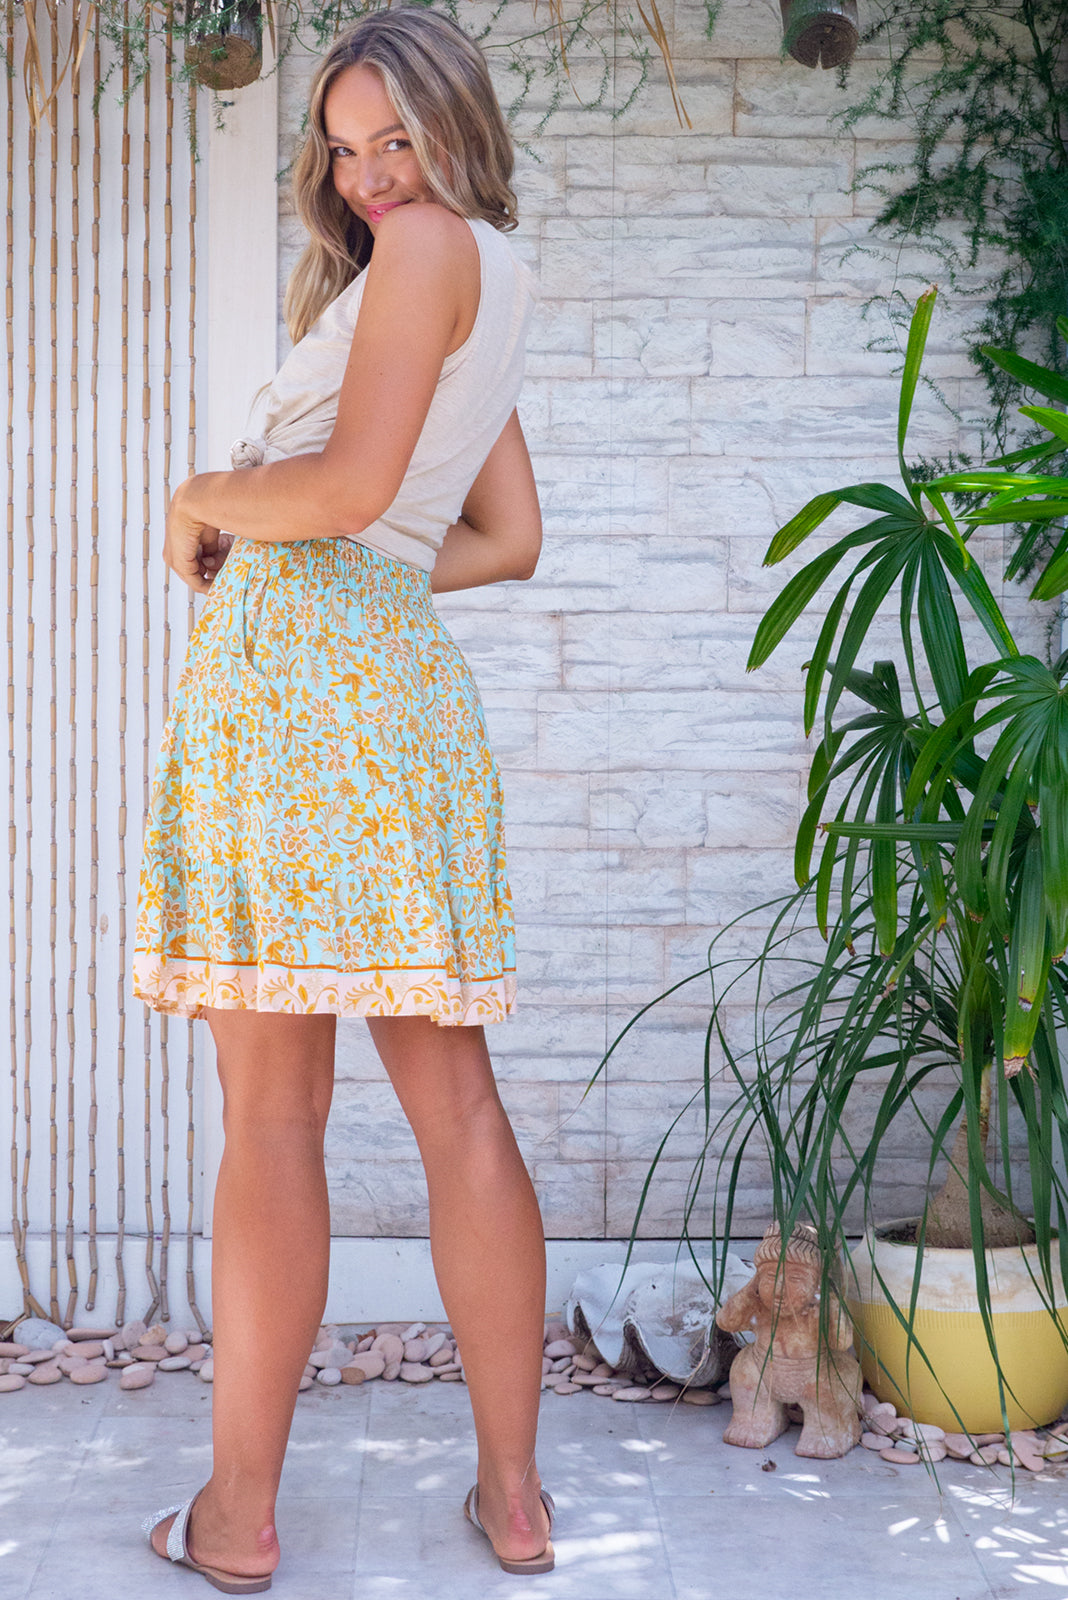 The Sea Coast Mini Skirt Seafoam features lightweight/non-stretch fabric, elasticated back waistband, tiered for flirty fullness, side pockets and woven 100% viscose in mint base with exotic golden print and soft peach border feature.